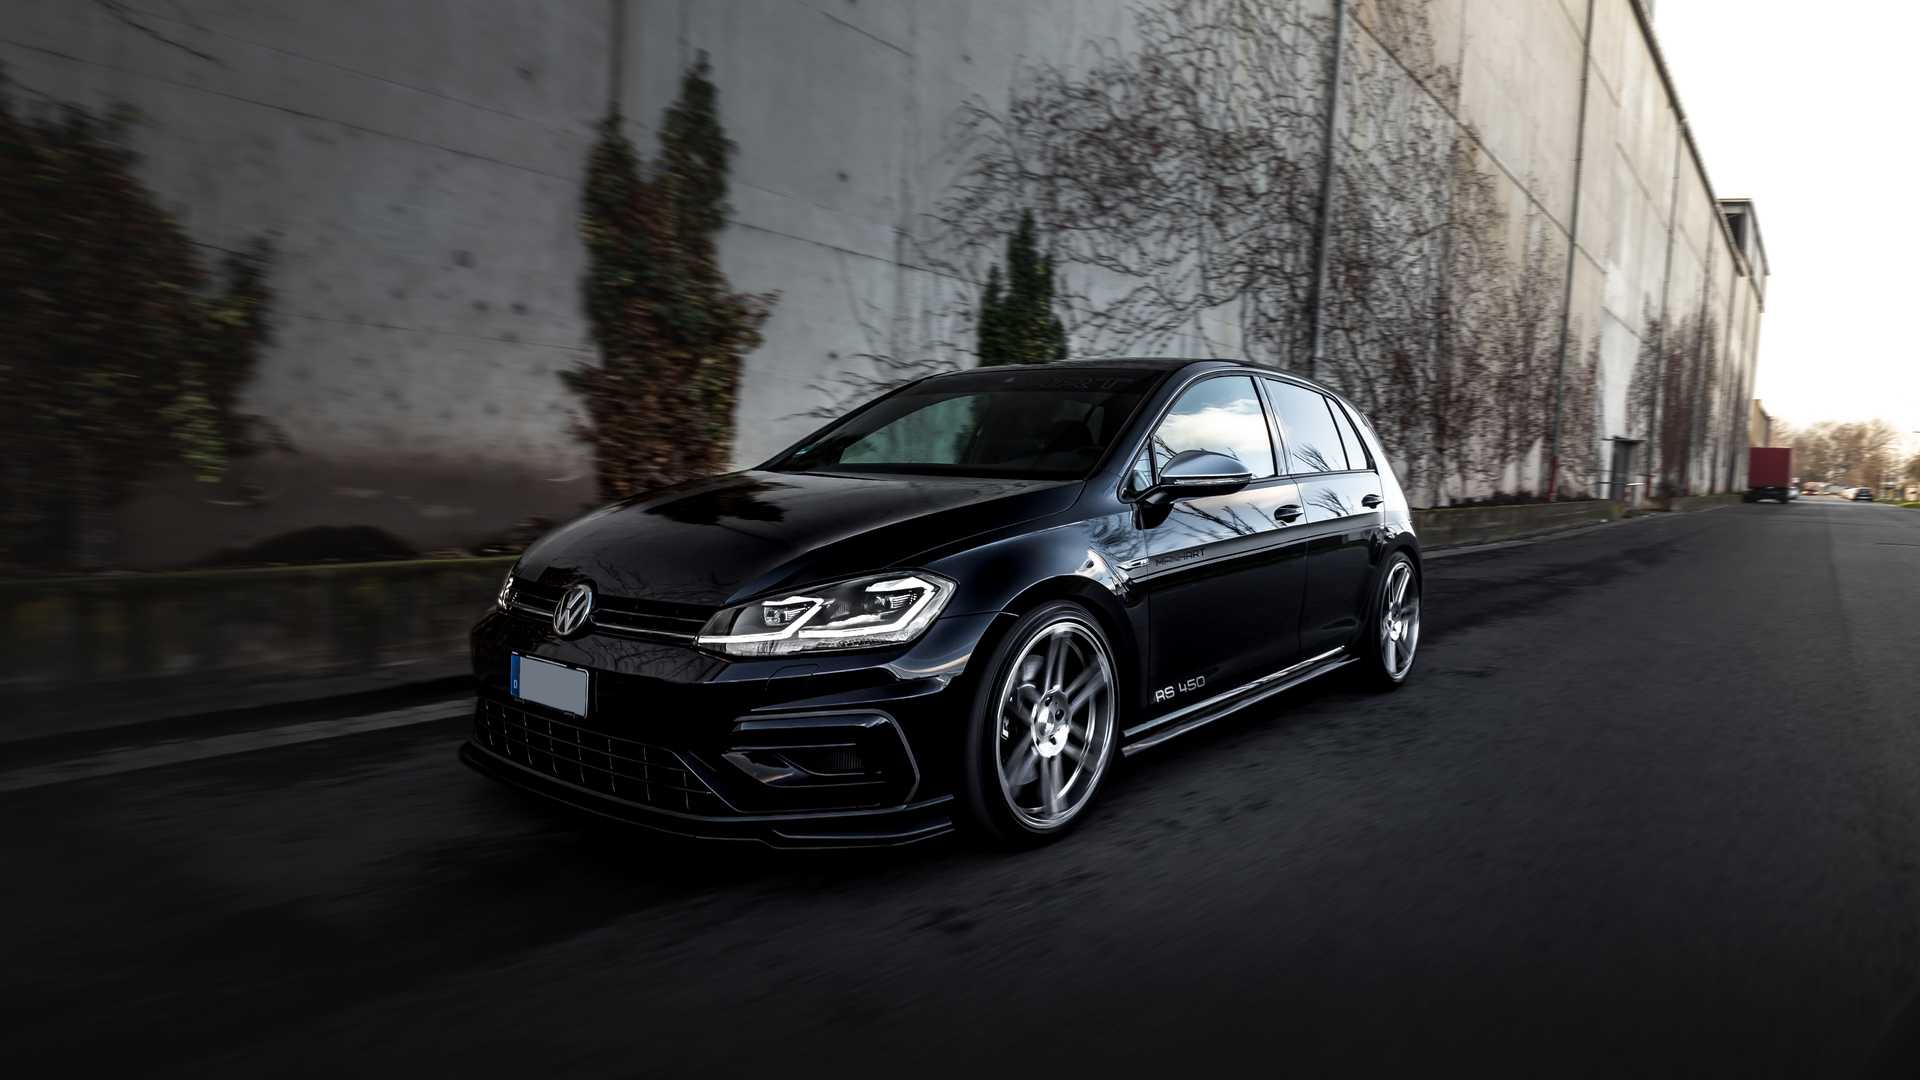 manhart-rs450-based-on-the-vw-golf-r (3)